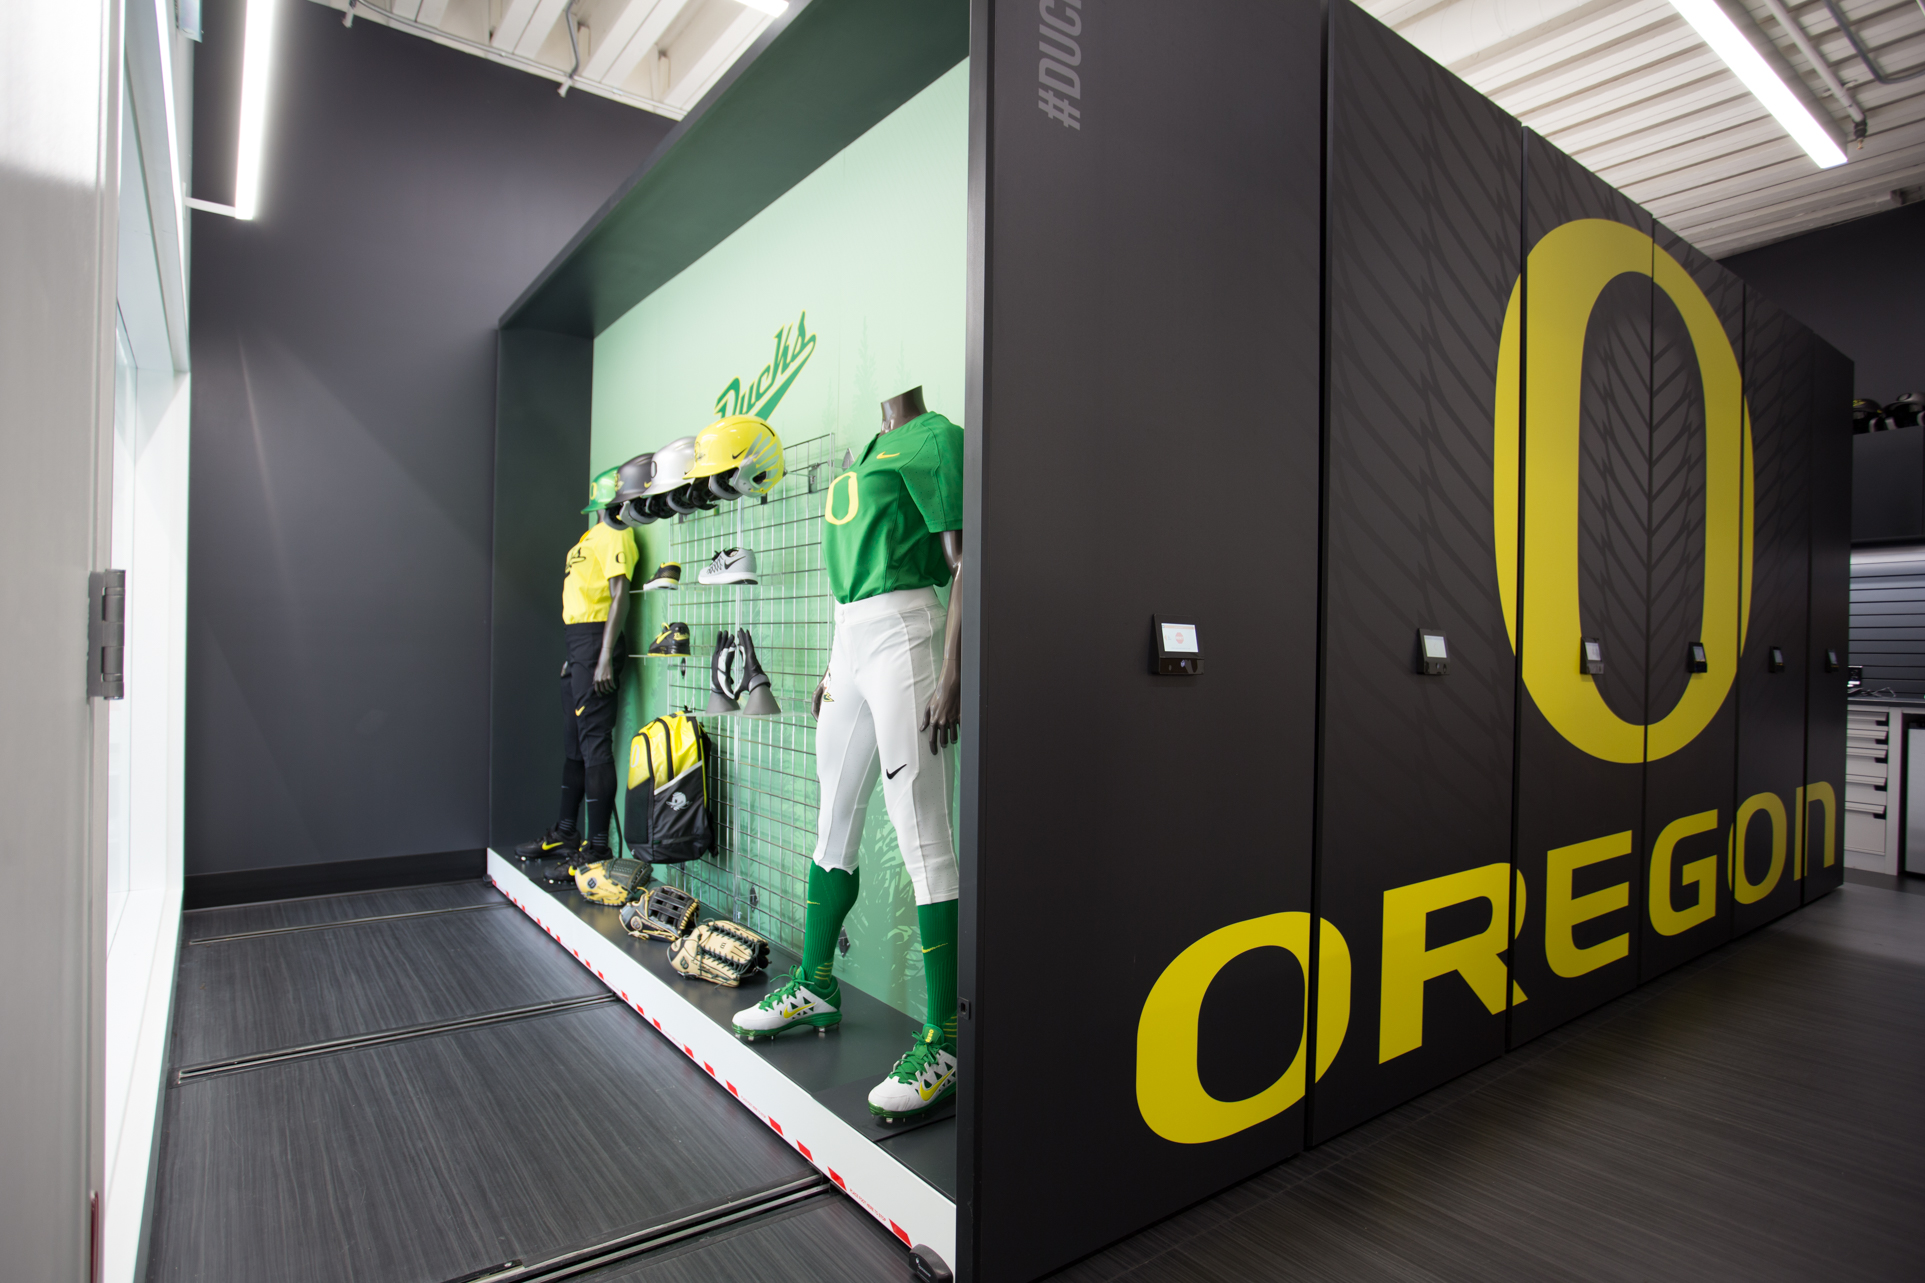 Oregon Softball display and athletic equipment storage